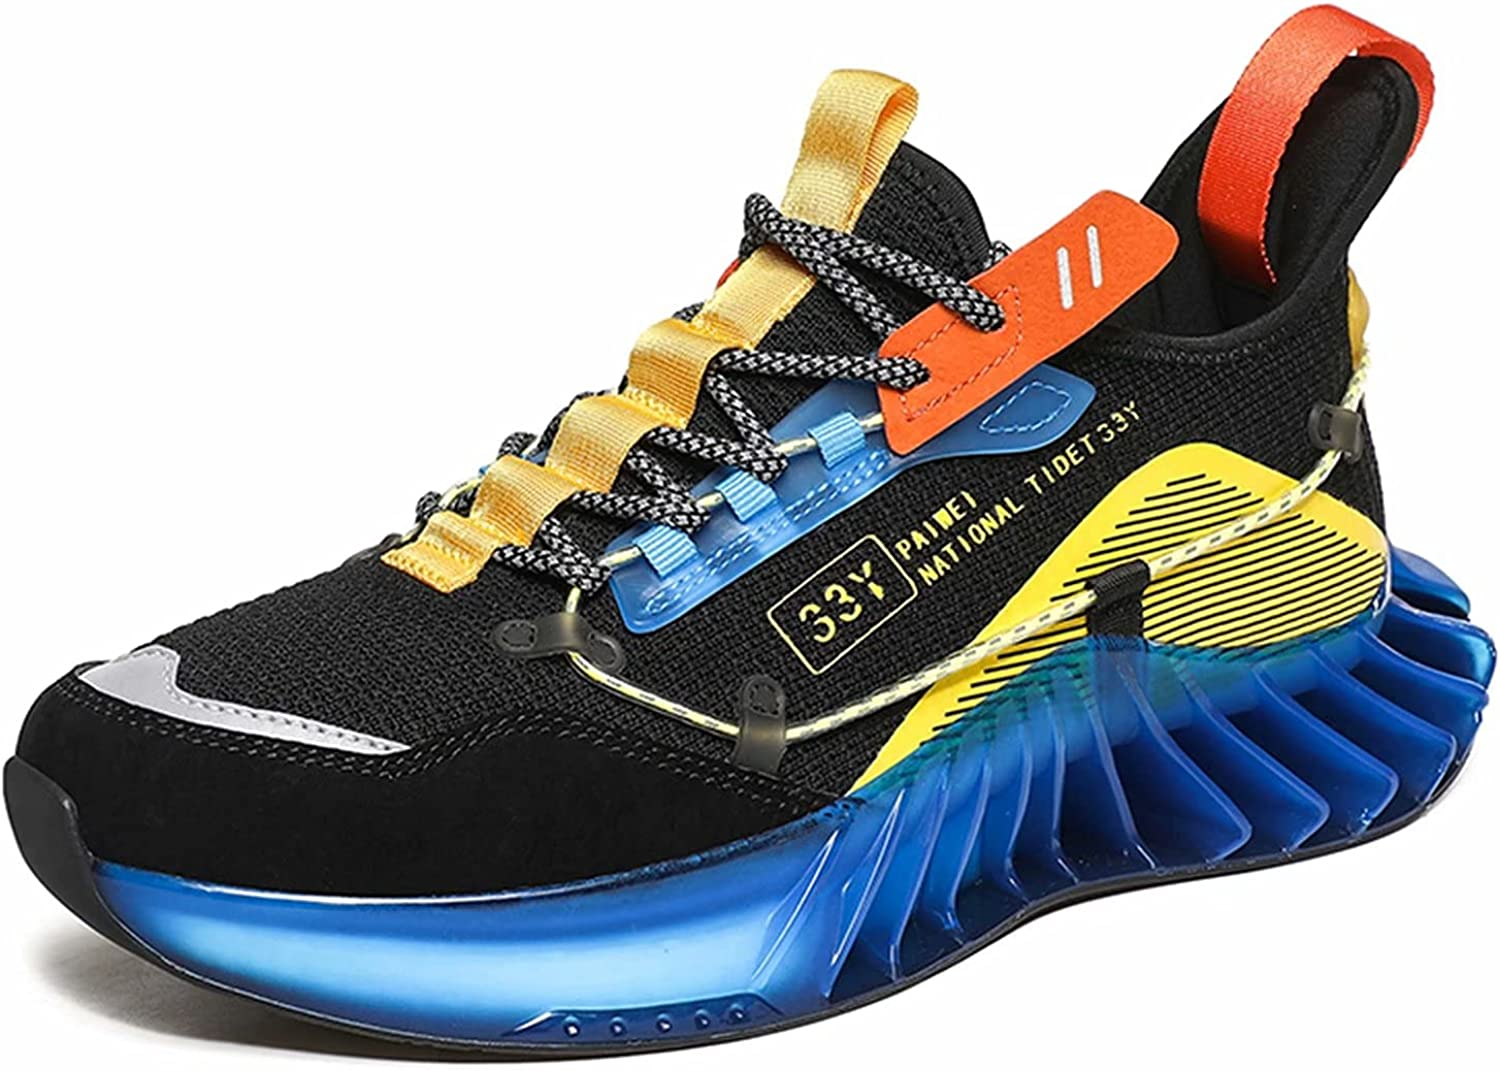 Men's Running Shoes Fashion Tennis Sneakers Blade Walking Sl Special price for a limited time Non Dallas Mall